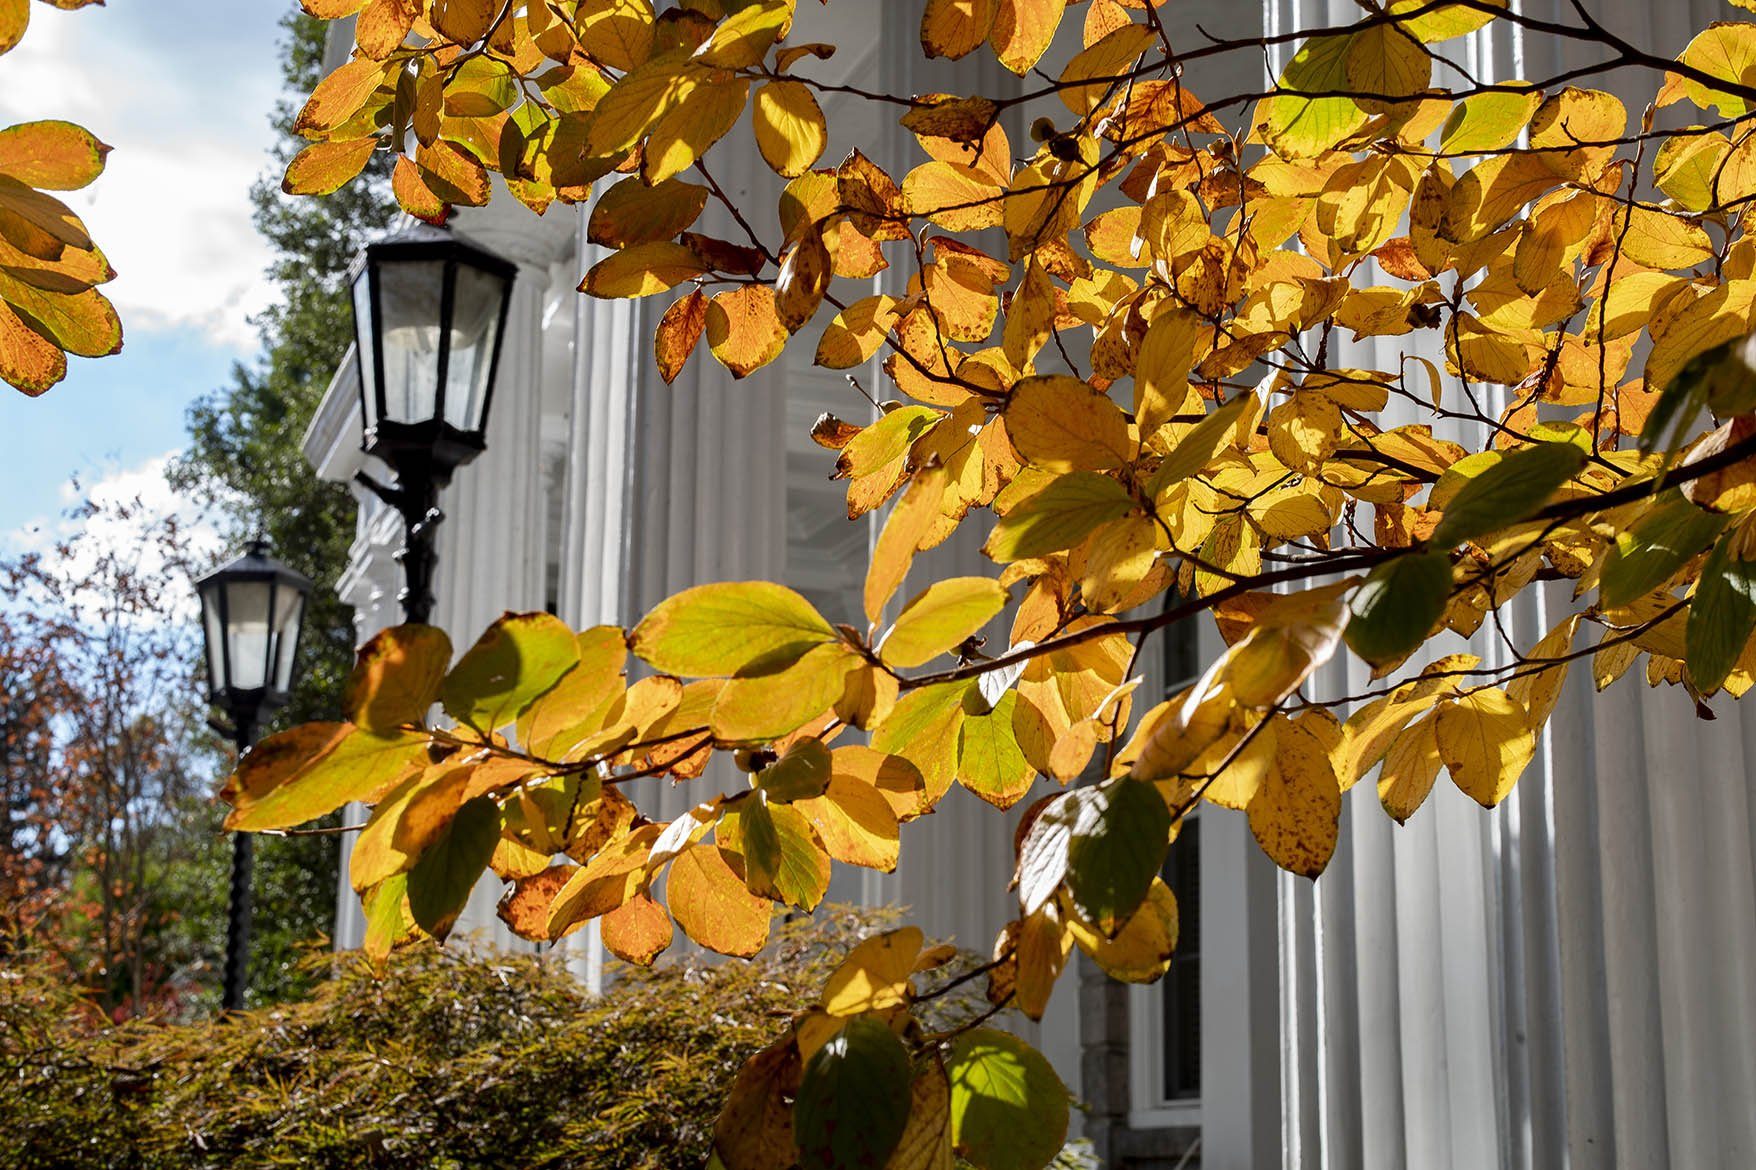 Parrish Hall in the Fall